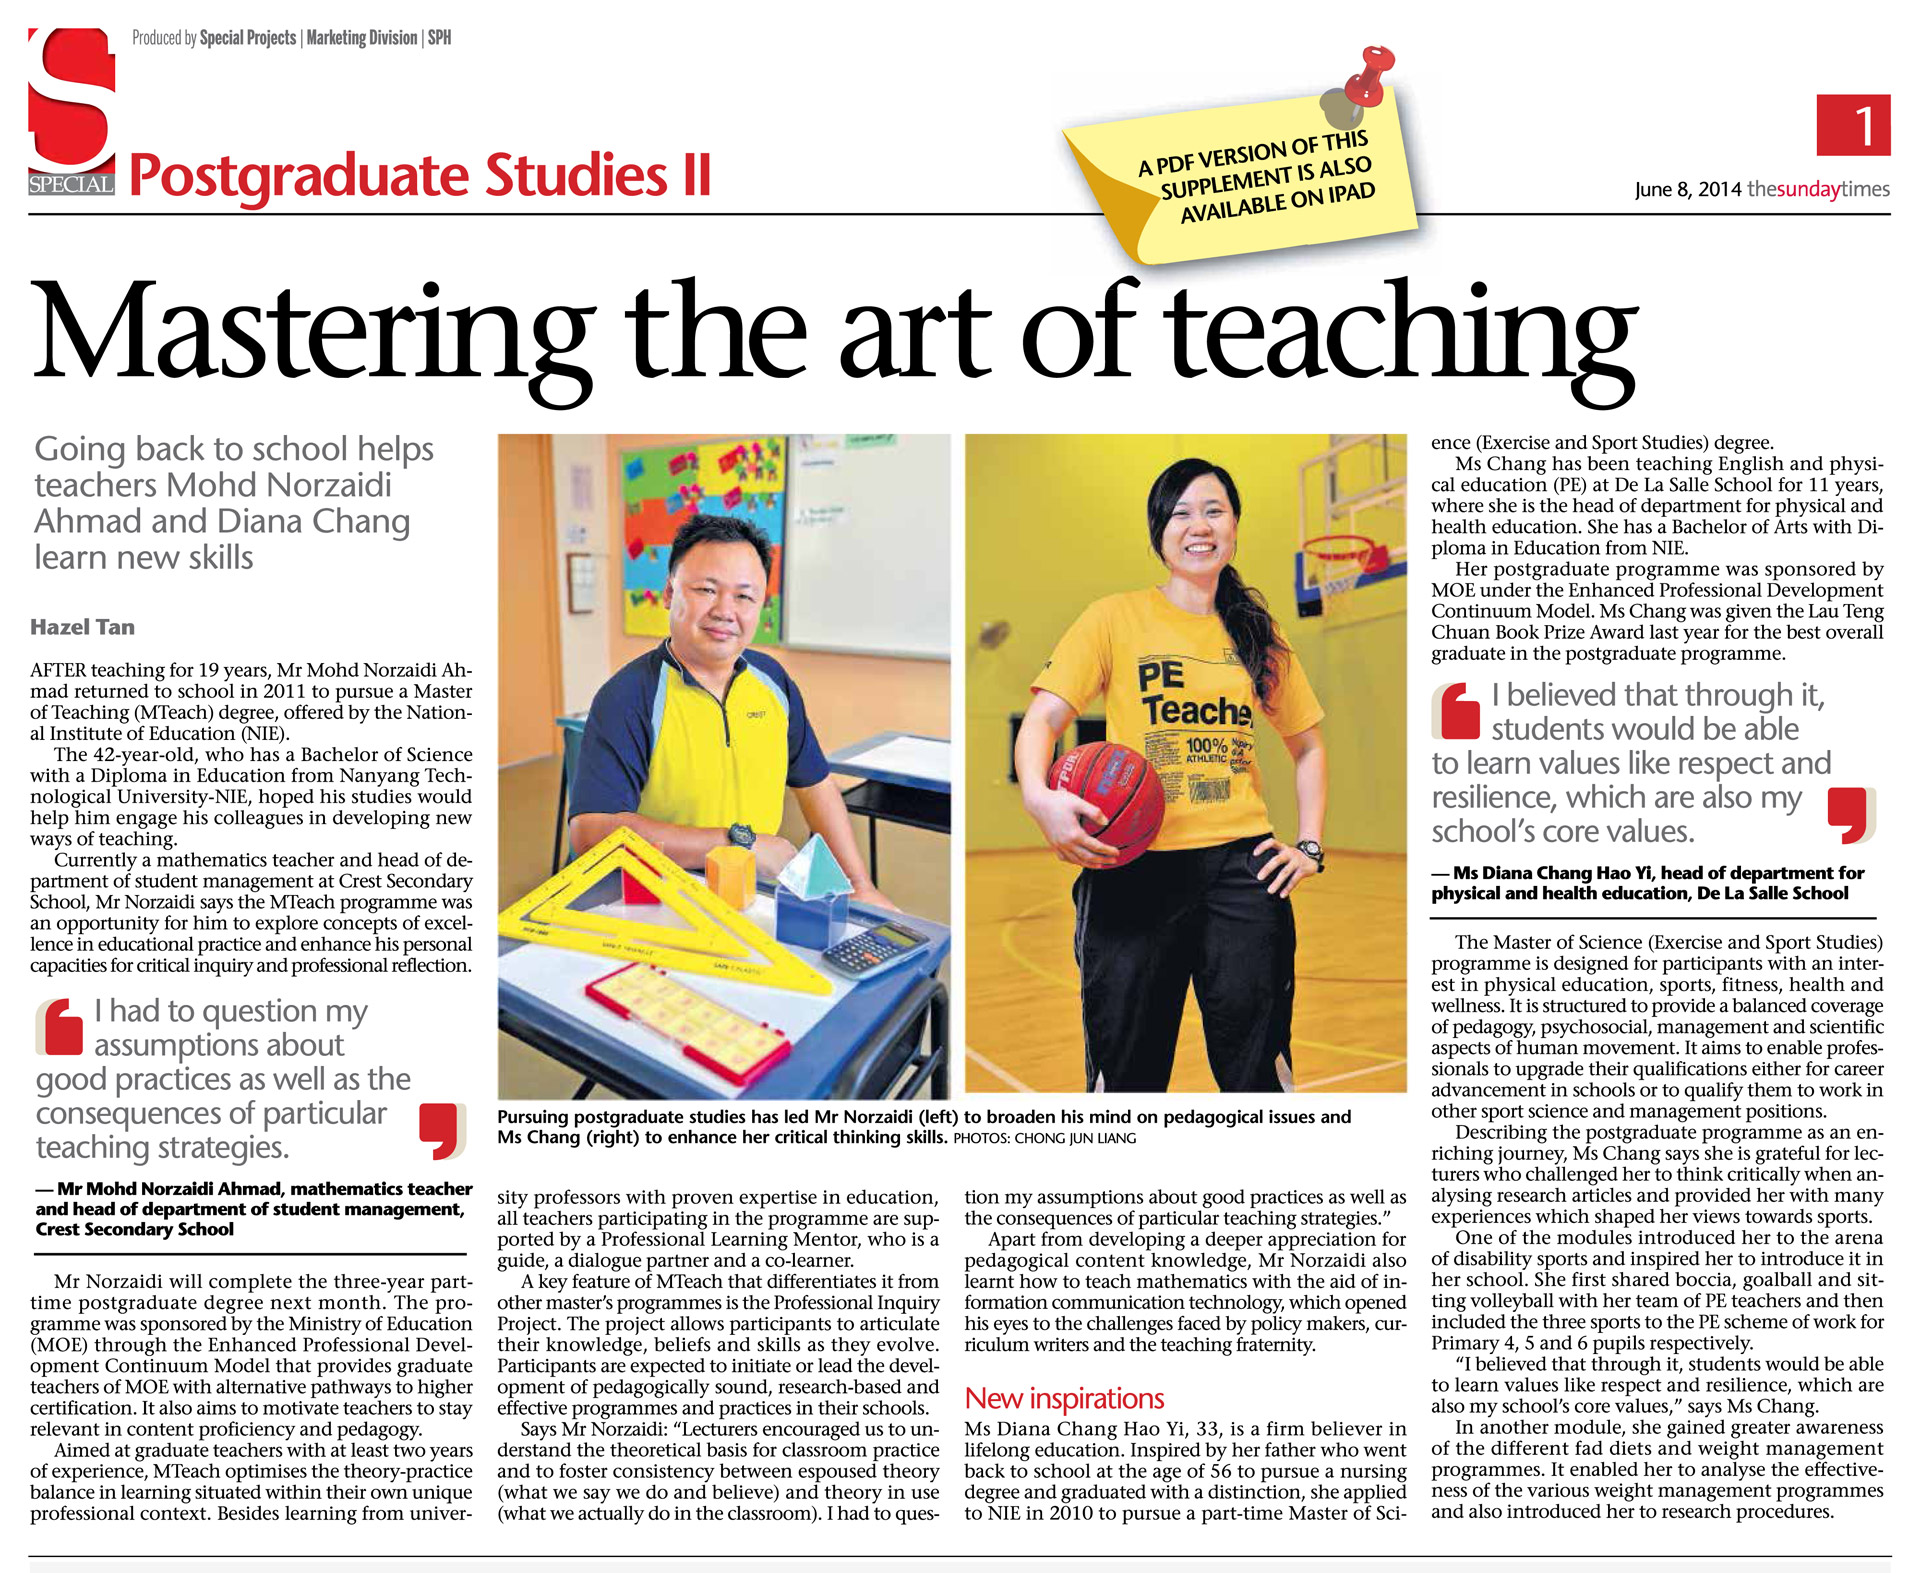 Mastering the Art of Teaching